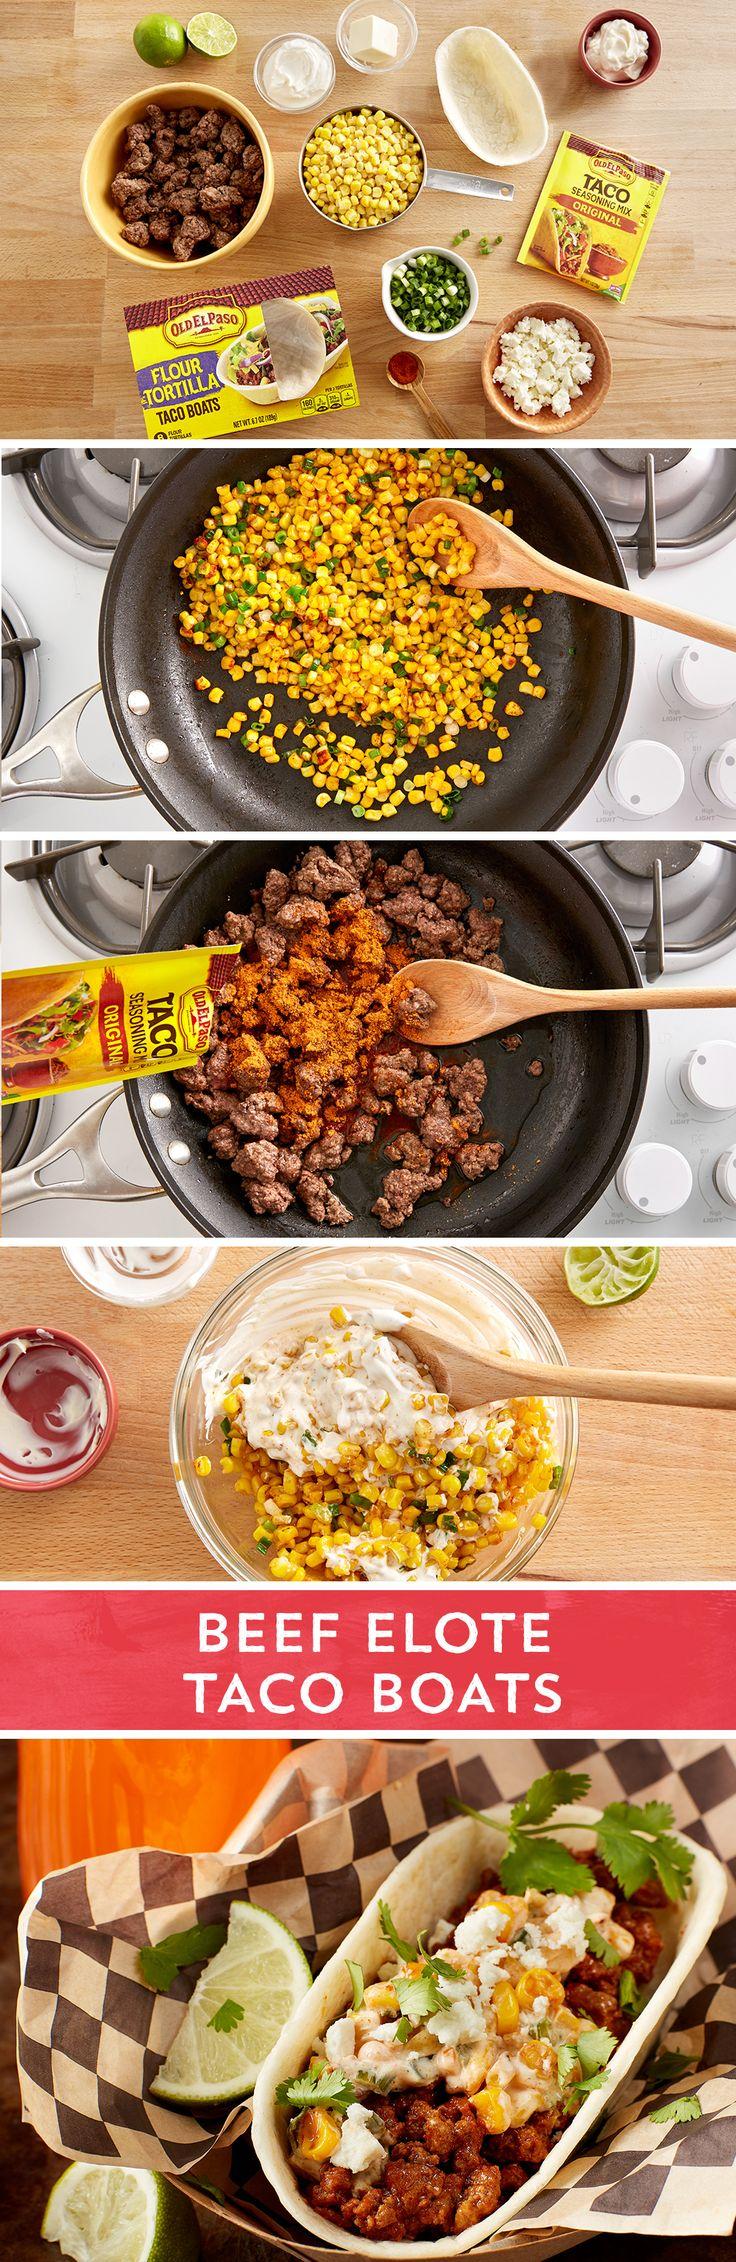 The flavors of traditional grilled Mexican street corn (elote) and beefy tacos combine in Old El Paso Taco Boats™ for a fun riff on a classic. Beef cooked with Old El Paso™ taco seasoning makes the perfect base for these sweet, spicy, cheesy tacos. Sauted corn, green onions, and cayenne mix with mayo, sour cream and lime juice for the perfect topping. Serve with lime wedges and a sprinkle of queso fresco for authentic elote flair.